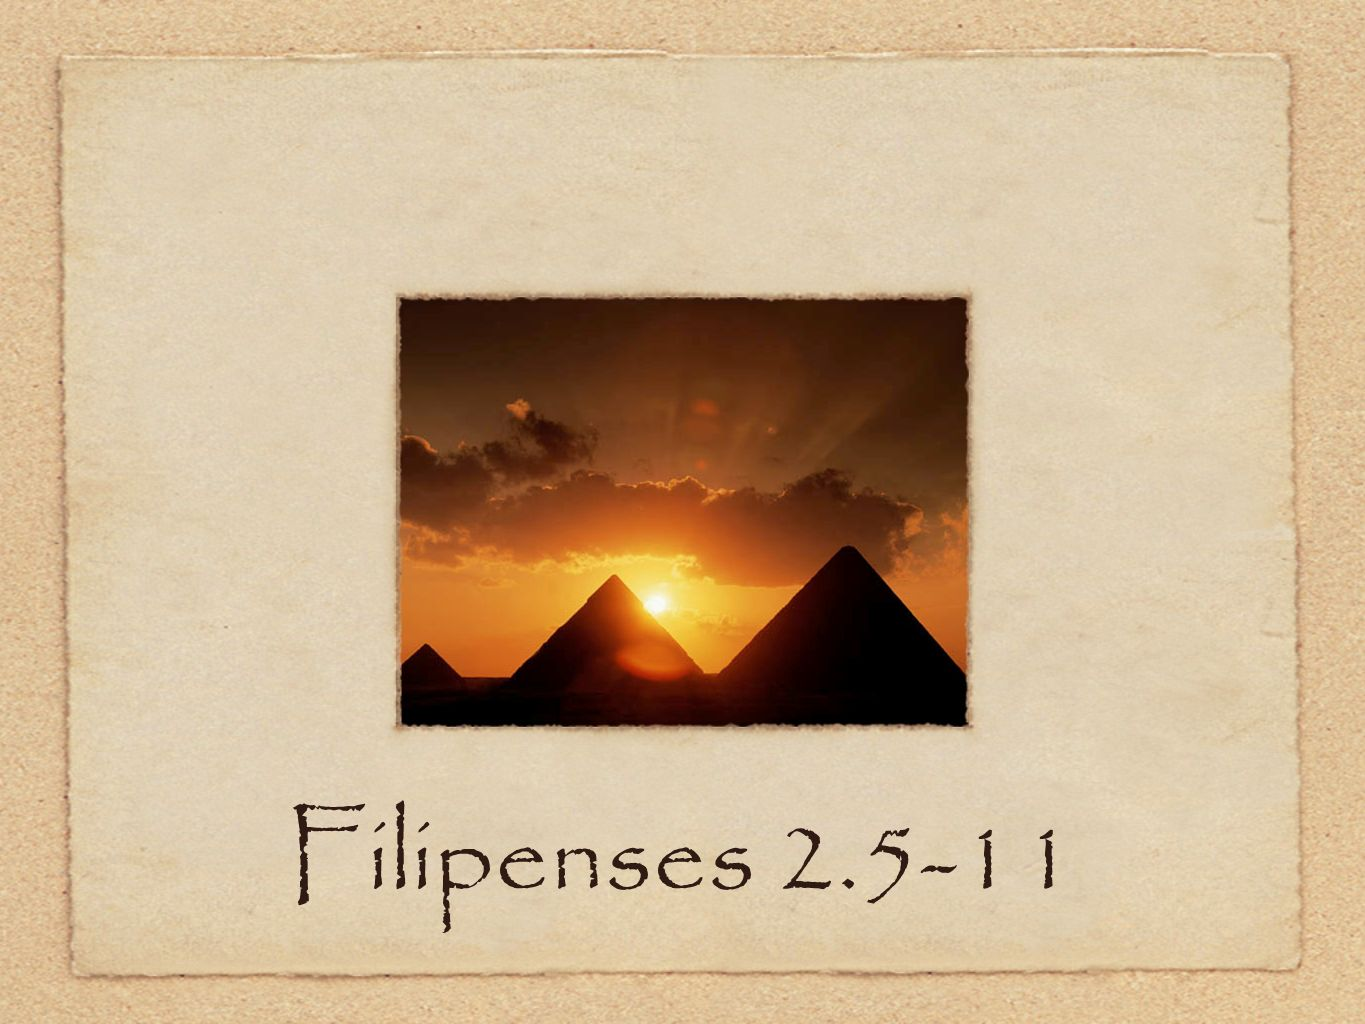 Filipenses 2.5-11